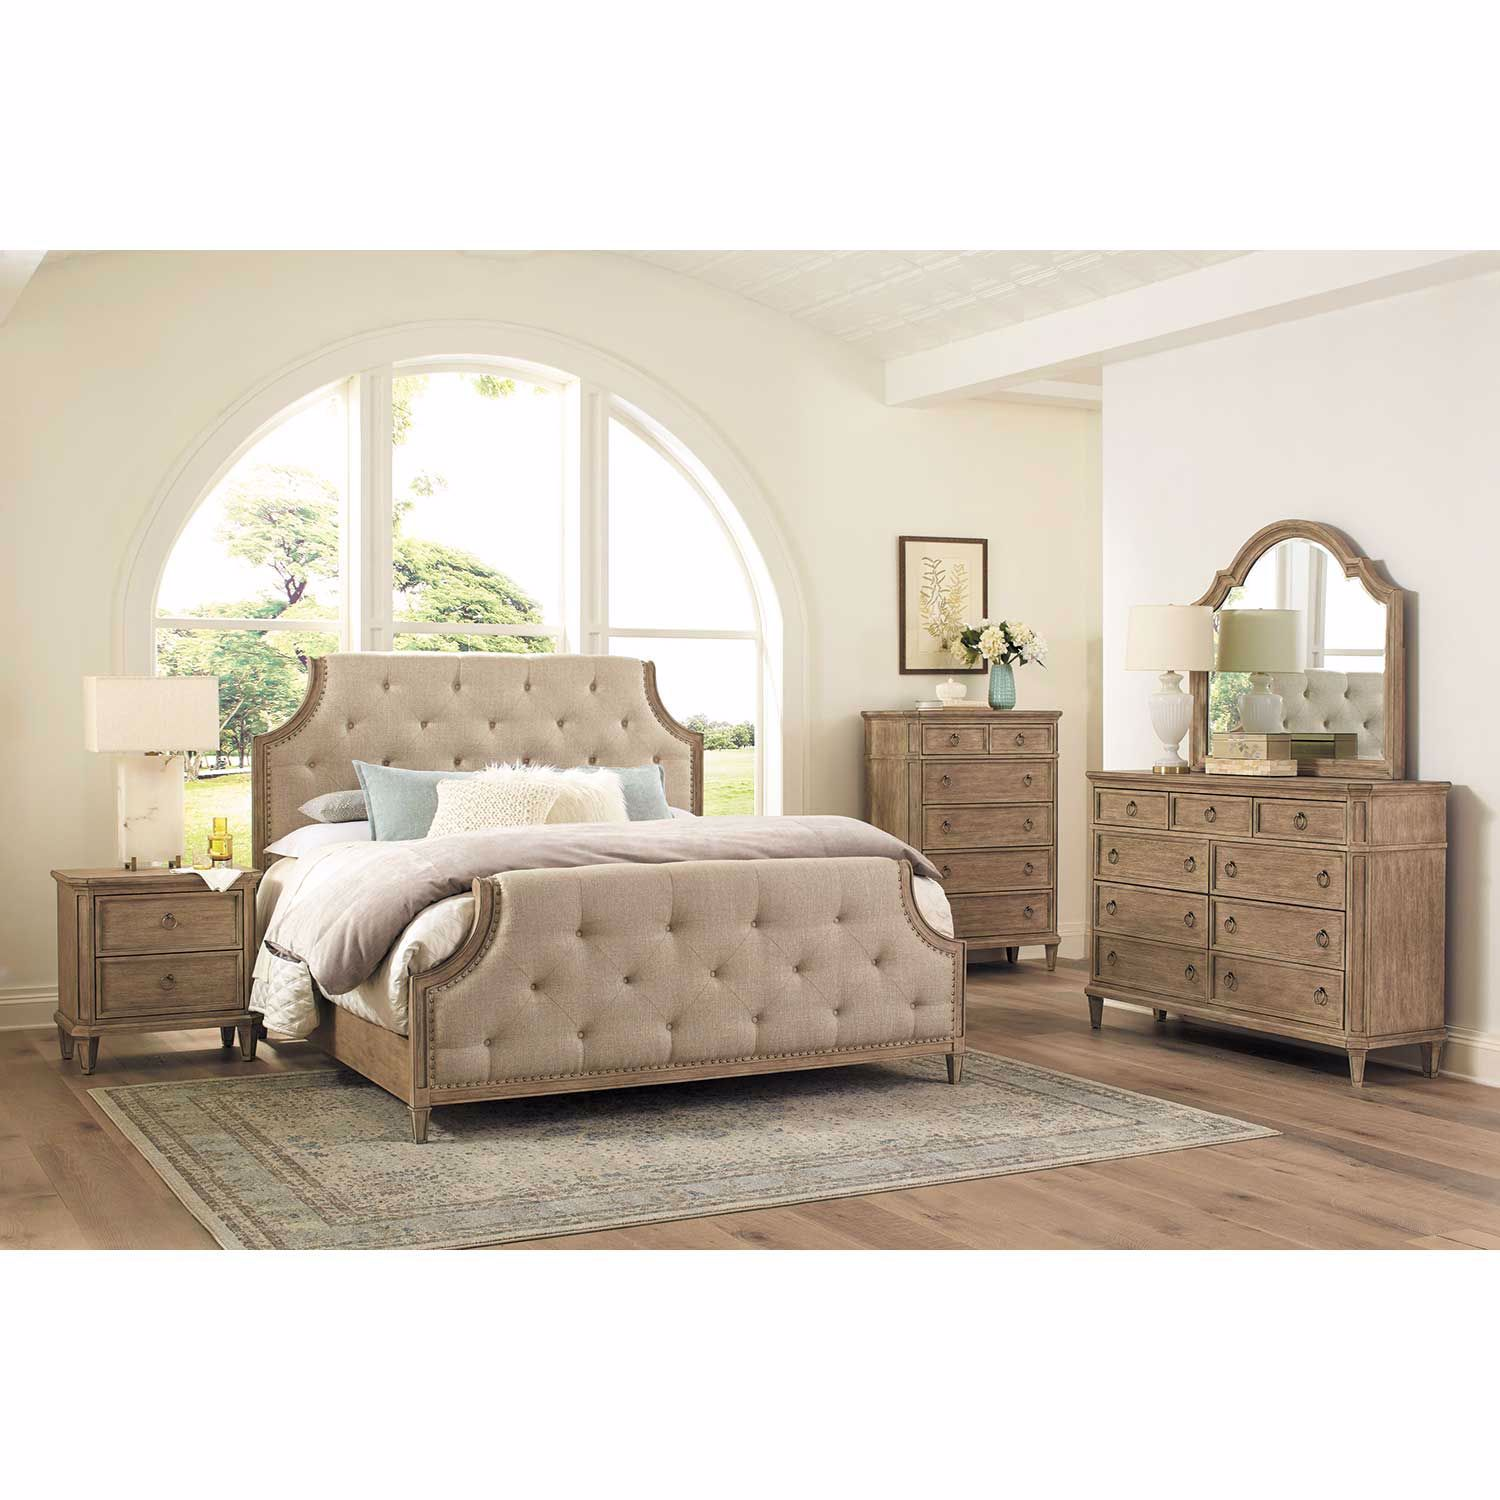 Picture of Tuscany Upholstered King Panel Bed